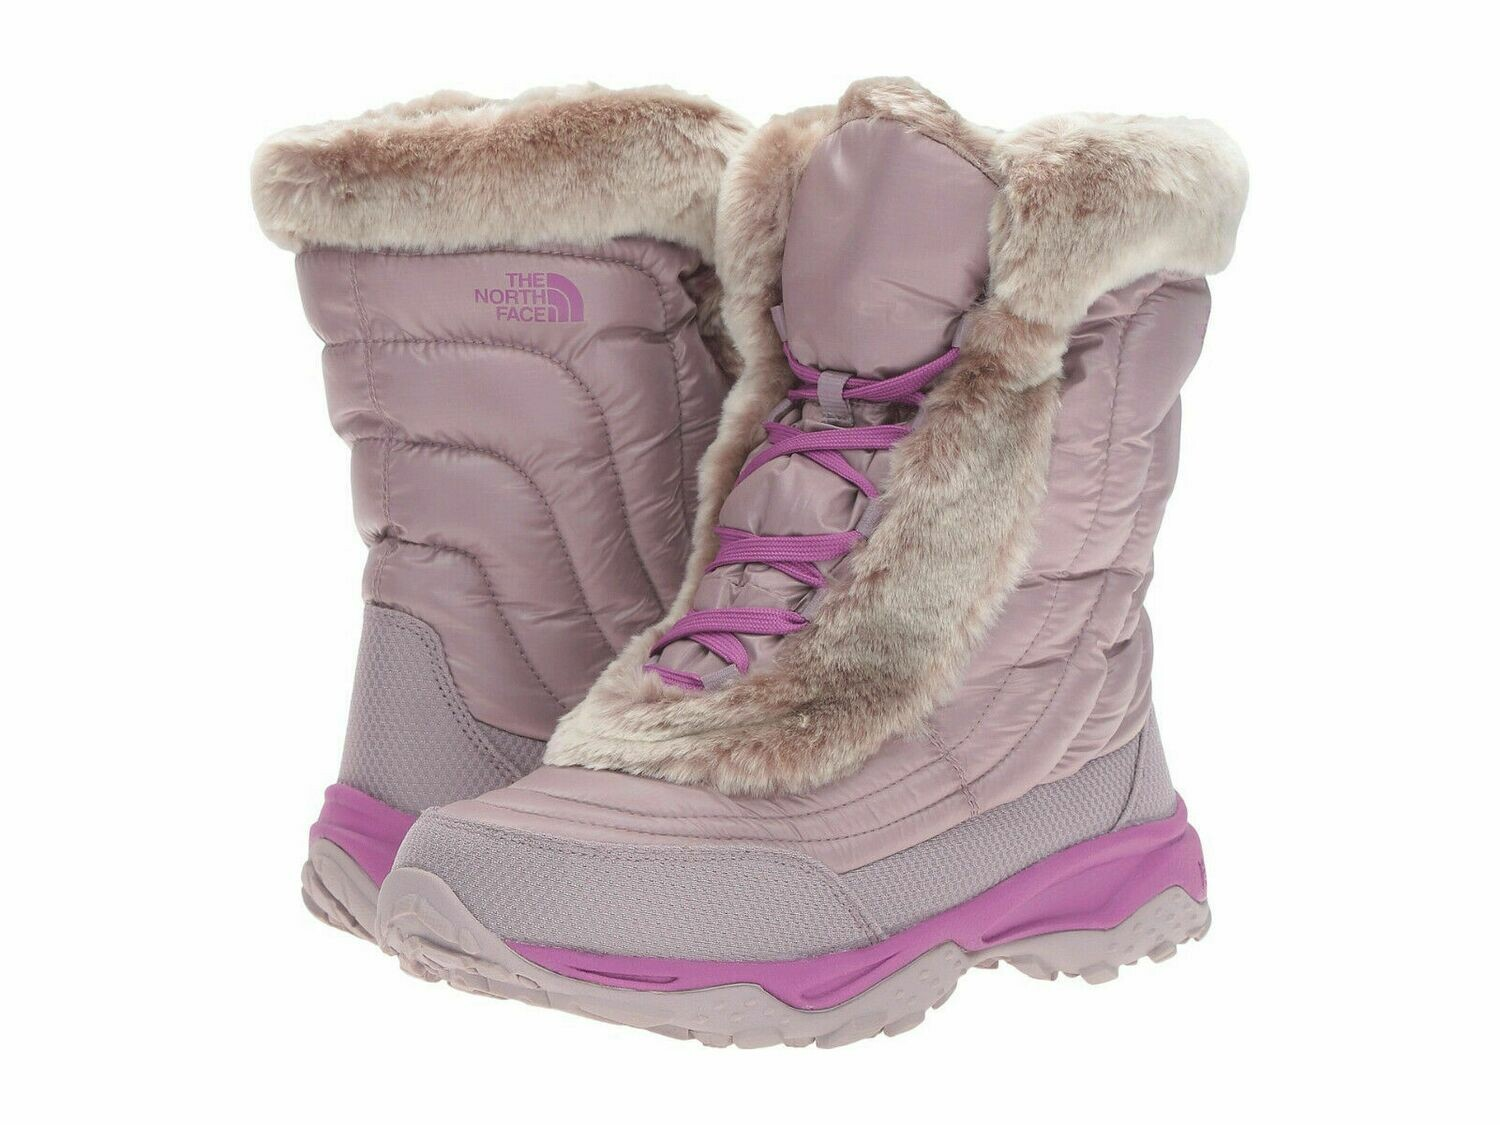 The North Face Girls' Nuptse Faux Fur II Boots